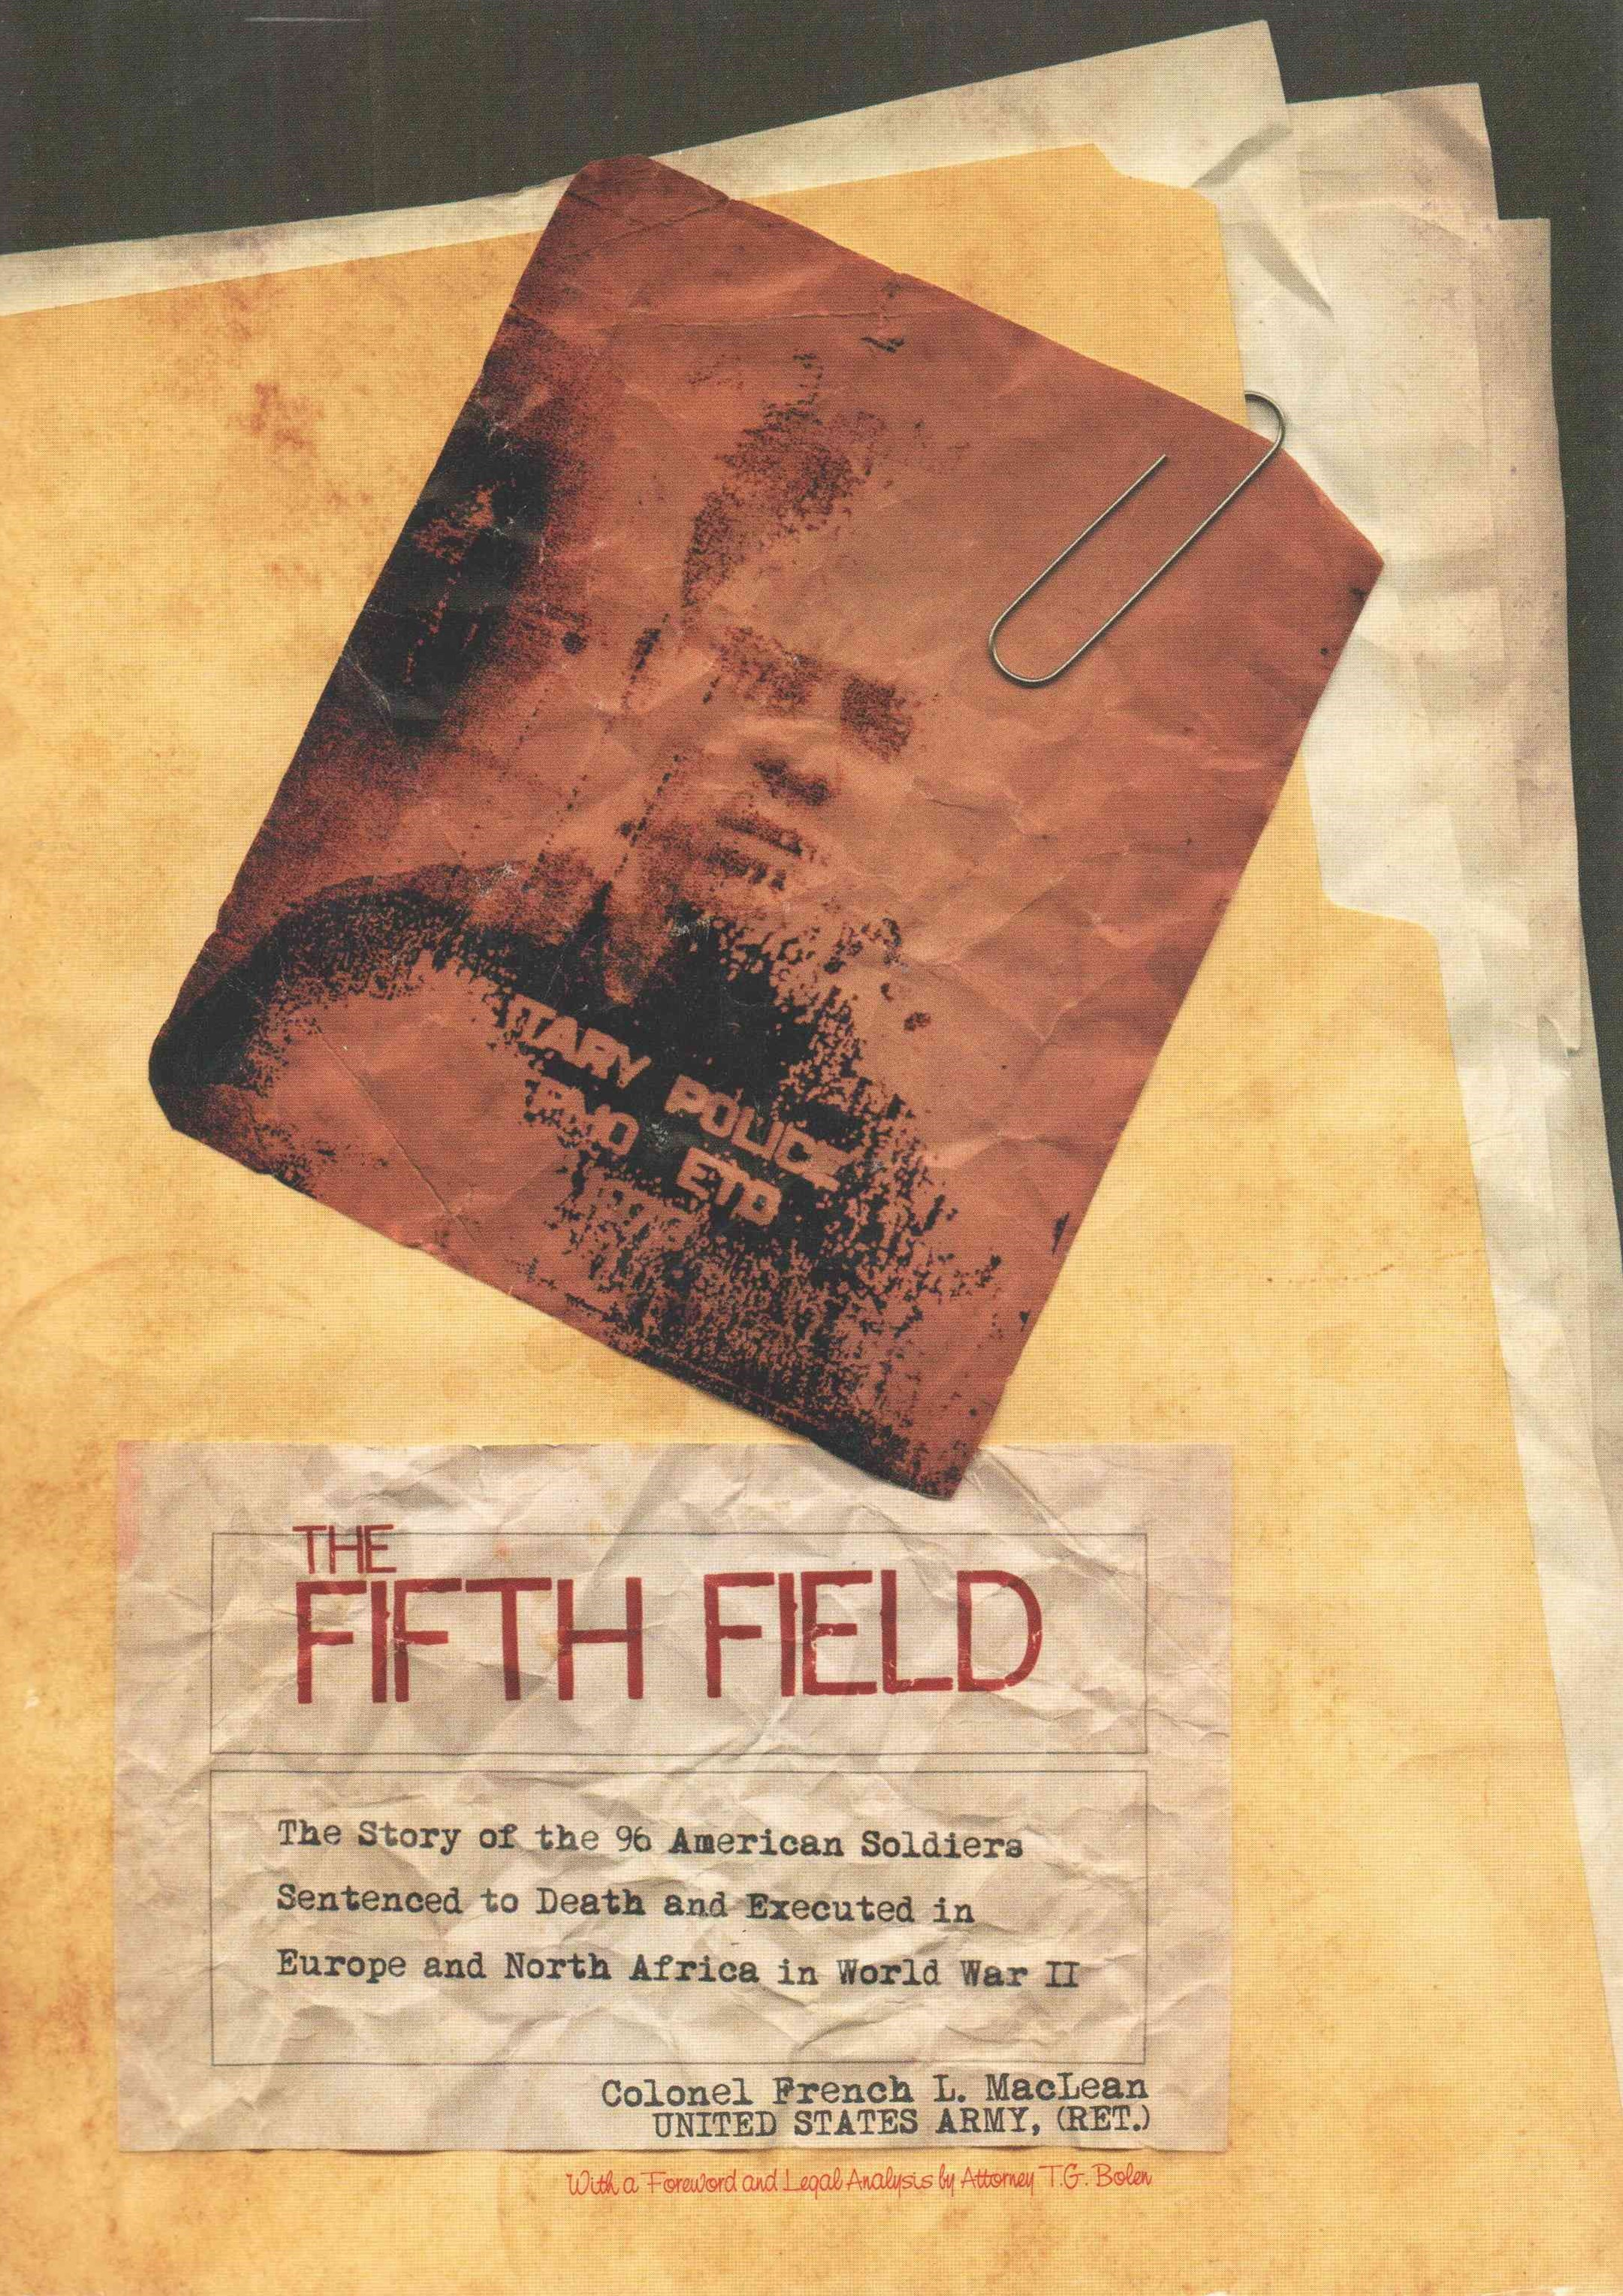 Fifth Field: The Story of the 96 American Soldiers Sentenced to Death and Executed in Eure and North Africa in World War II